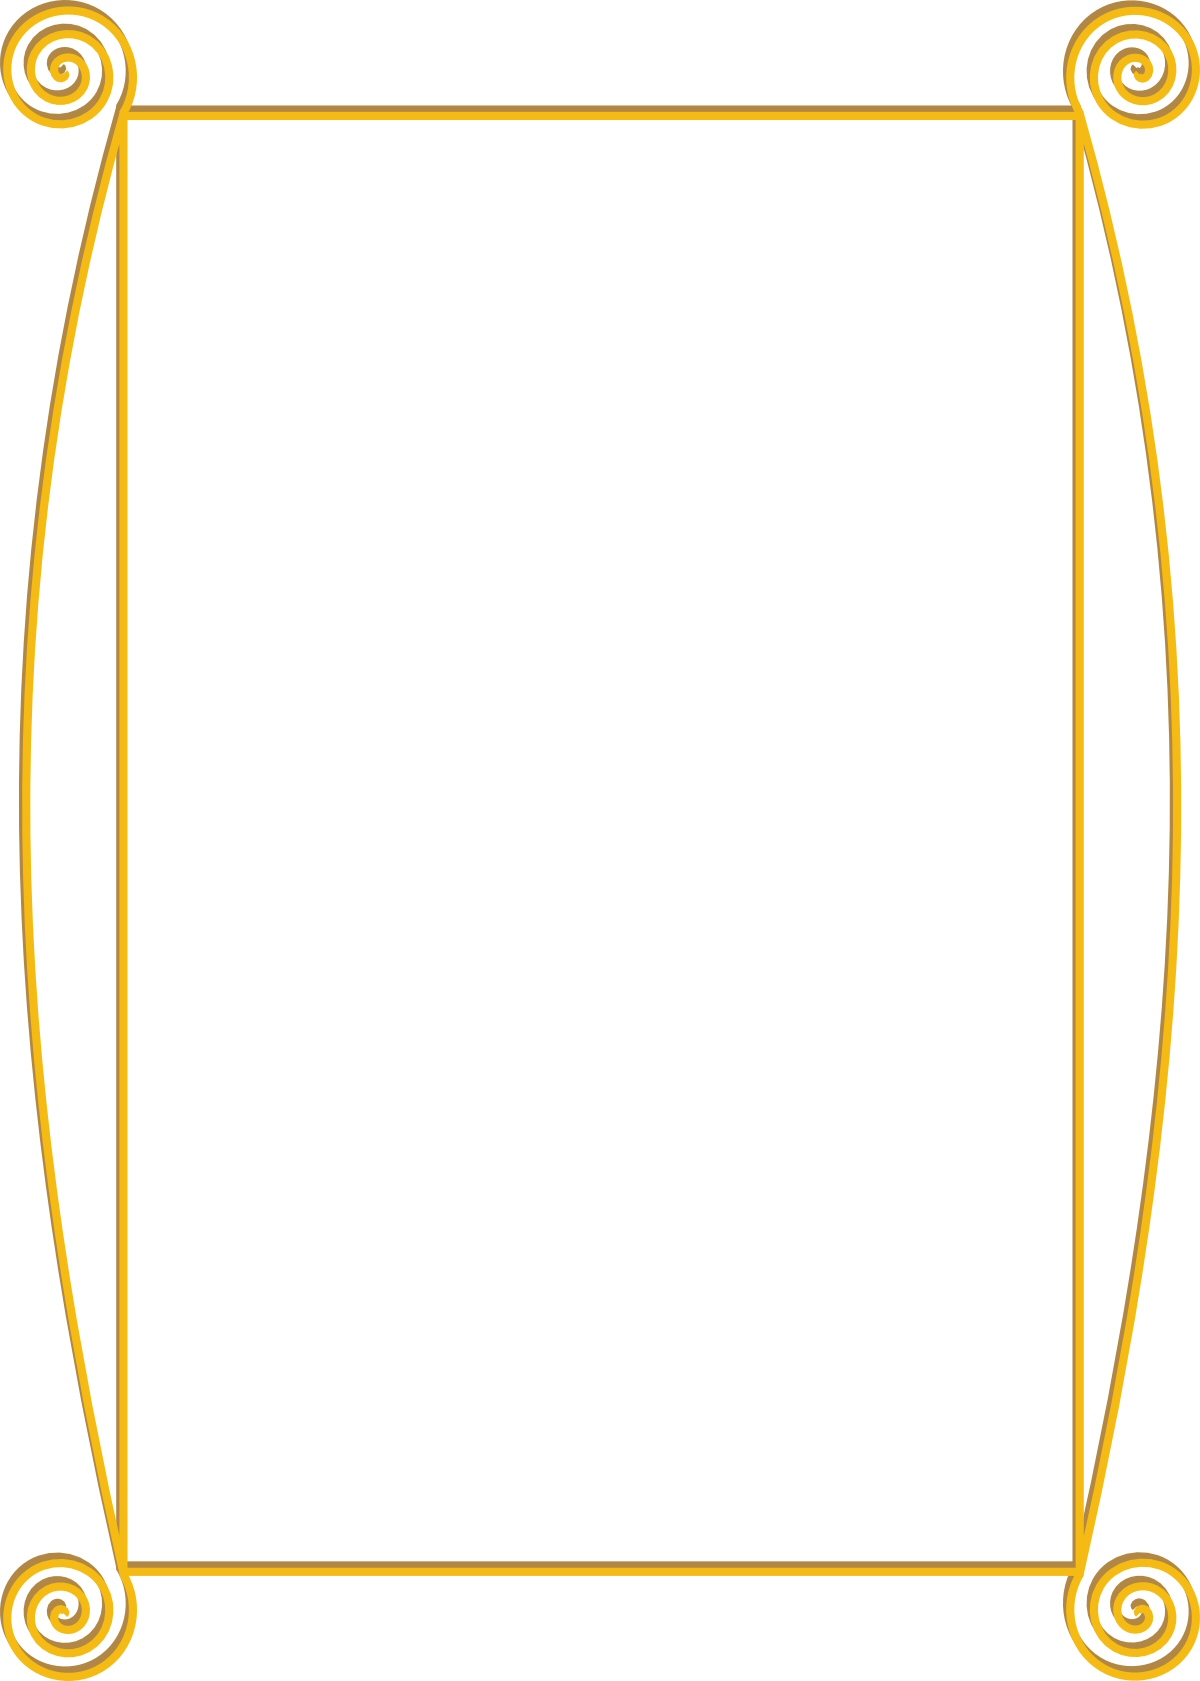 Fancy Gold Border Clipart - Clipart Suggest Fancy Color Border